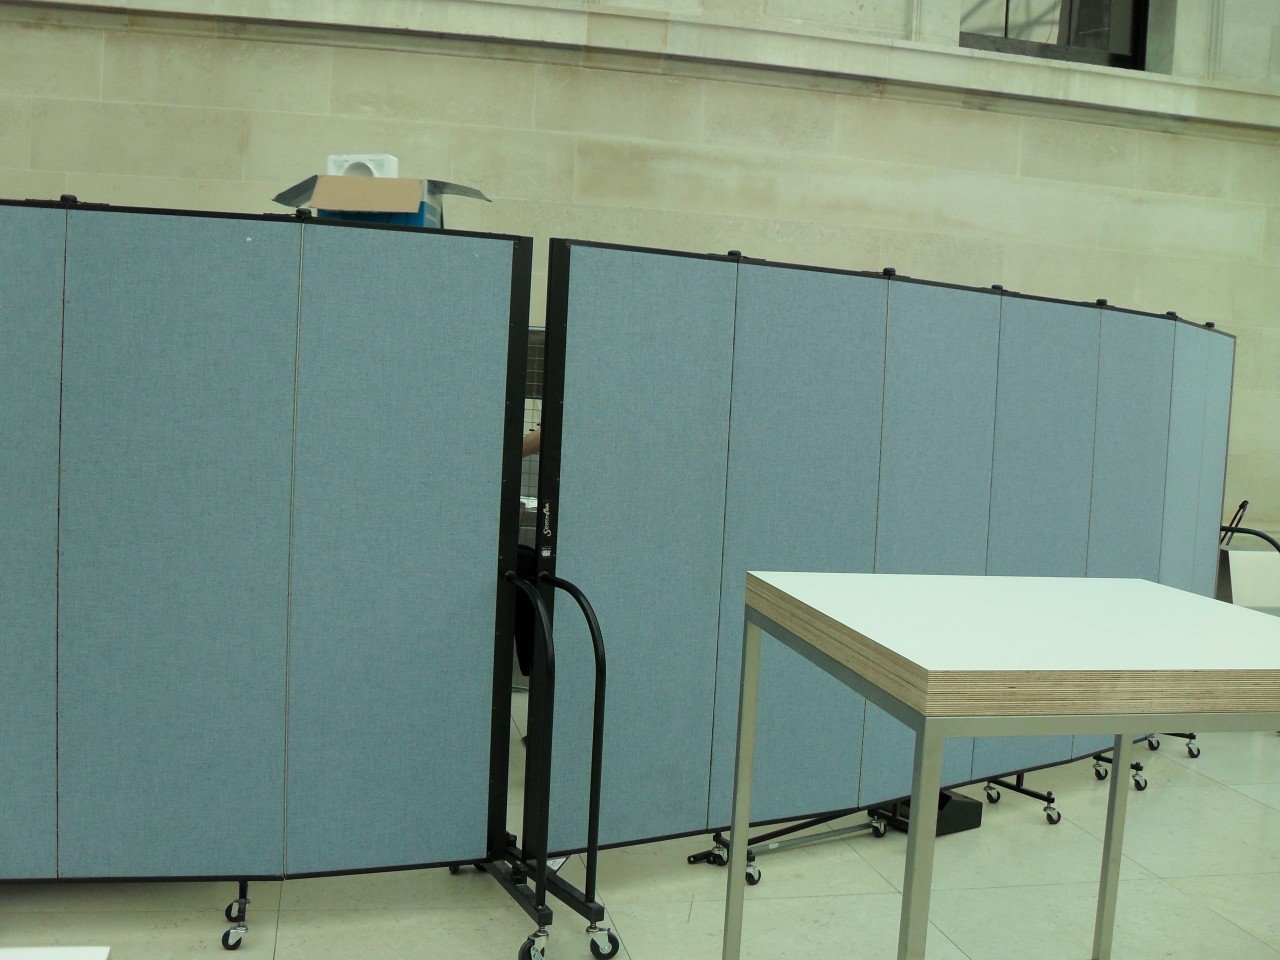 Screenflex Room Divider restrict access to a storage area in a room.